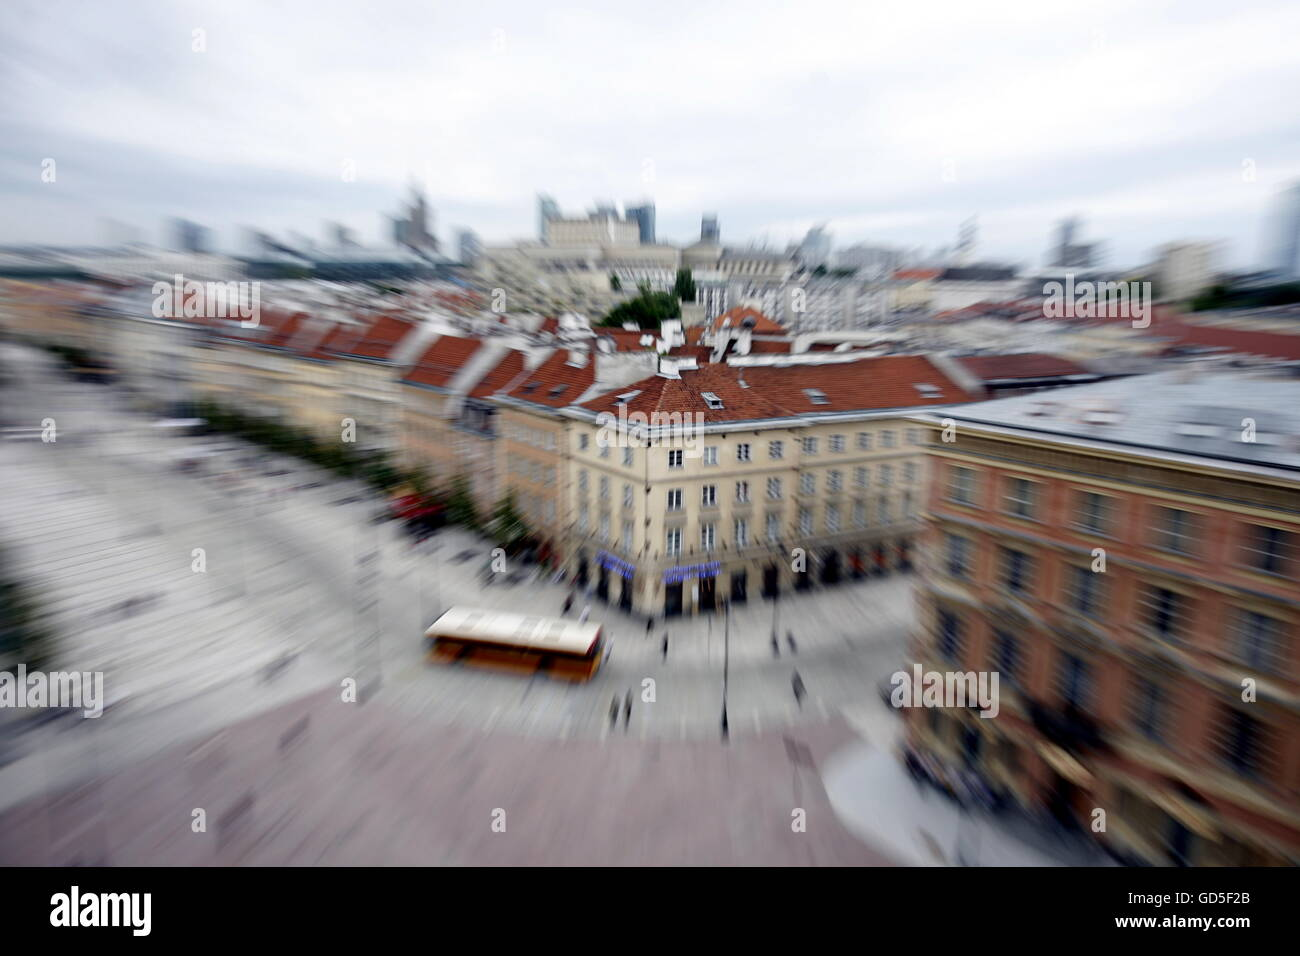 the old town in the City of Warsaw in Poland, East Europe. - Stock Image